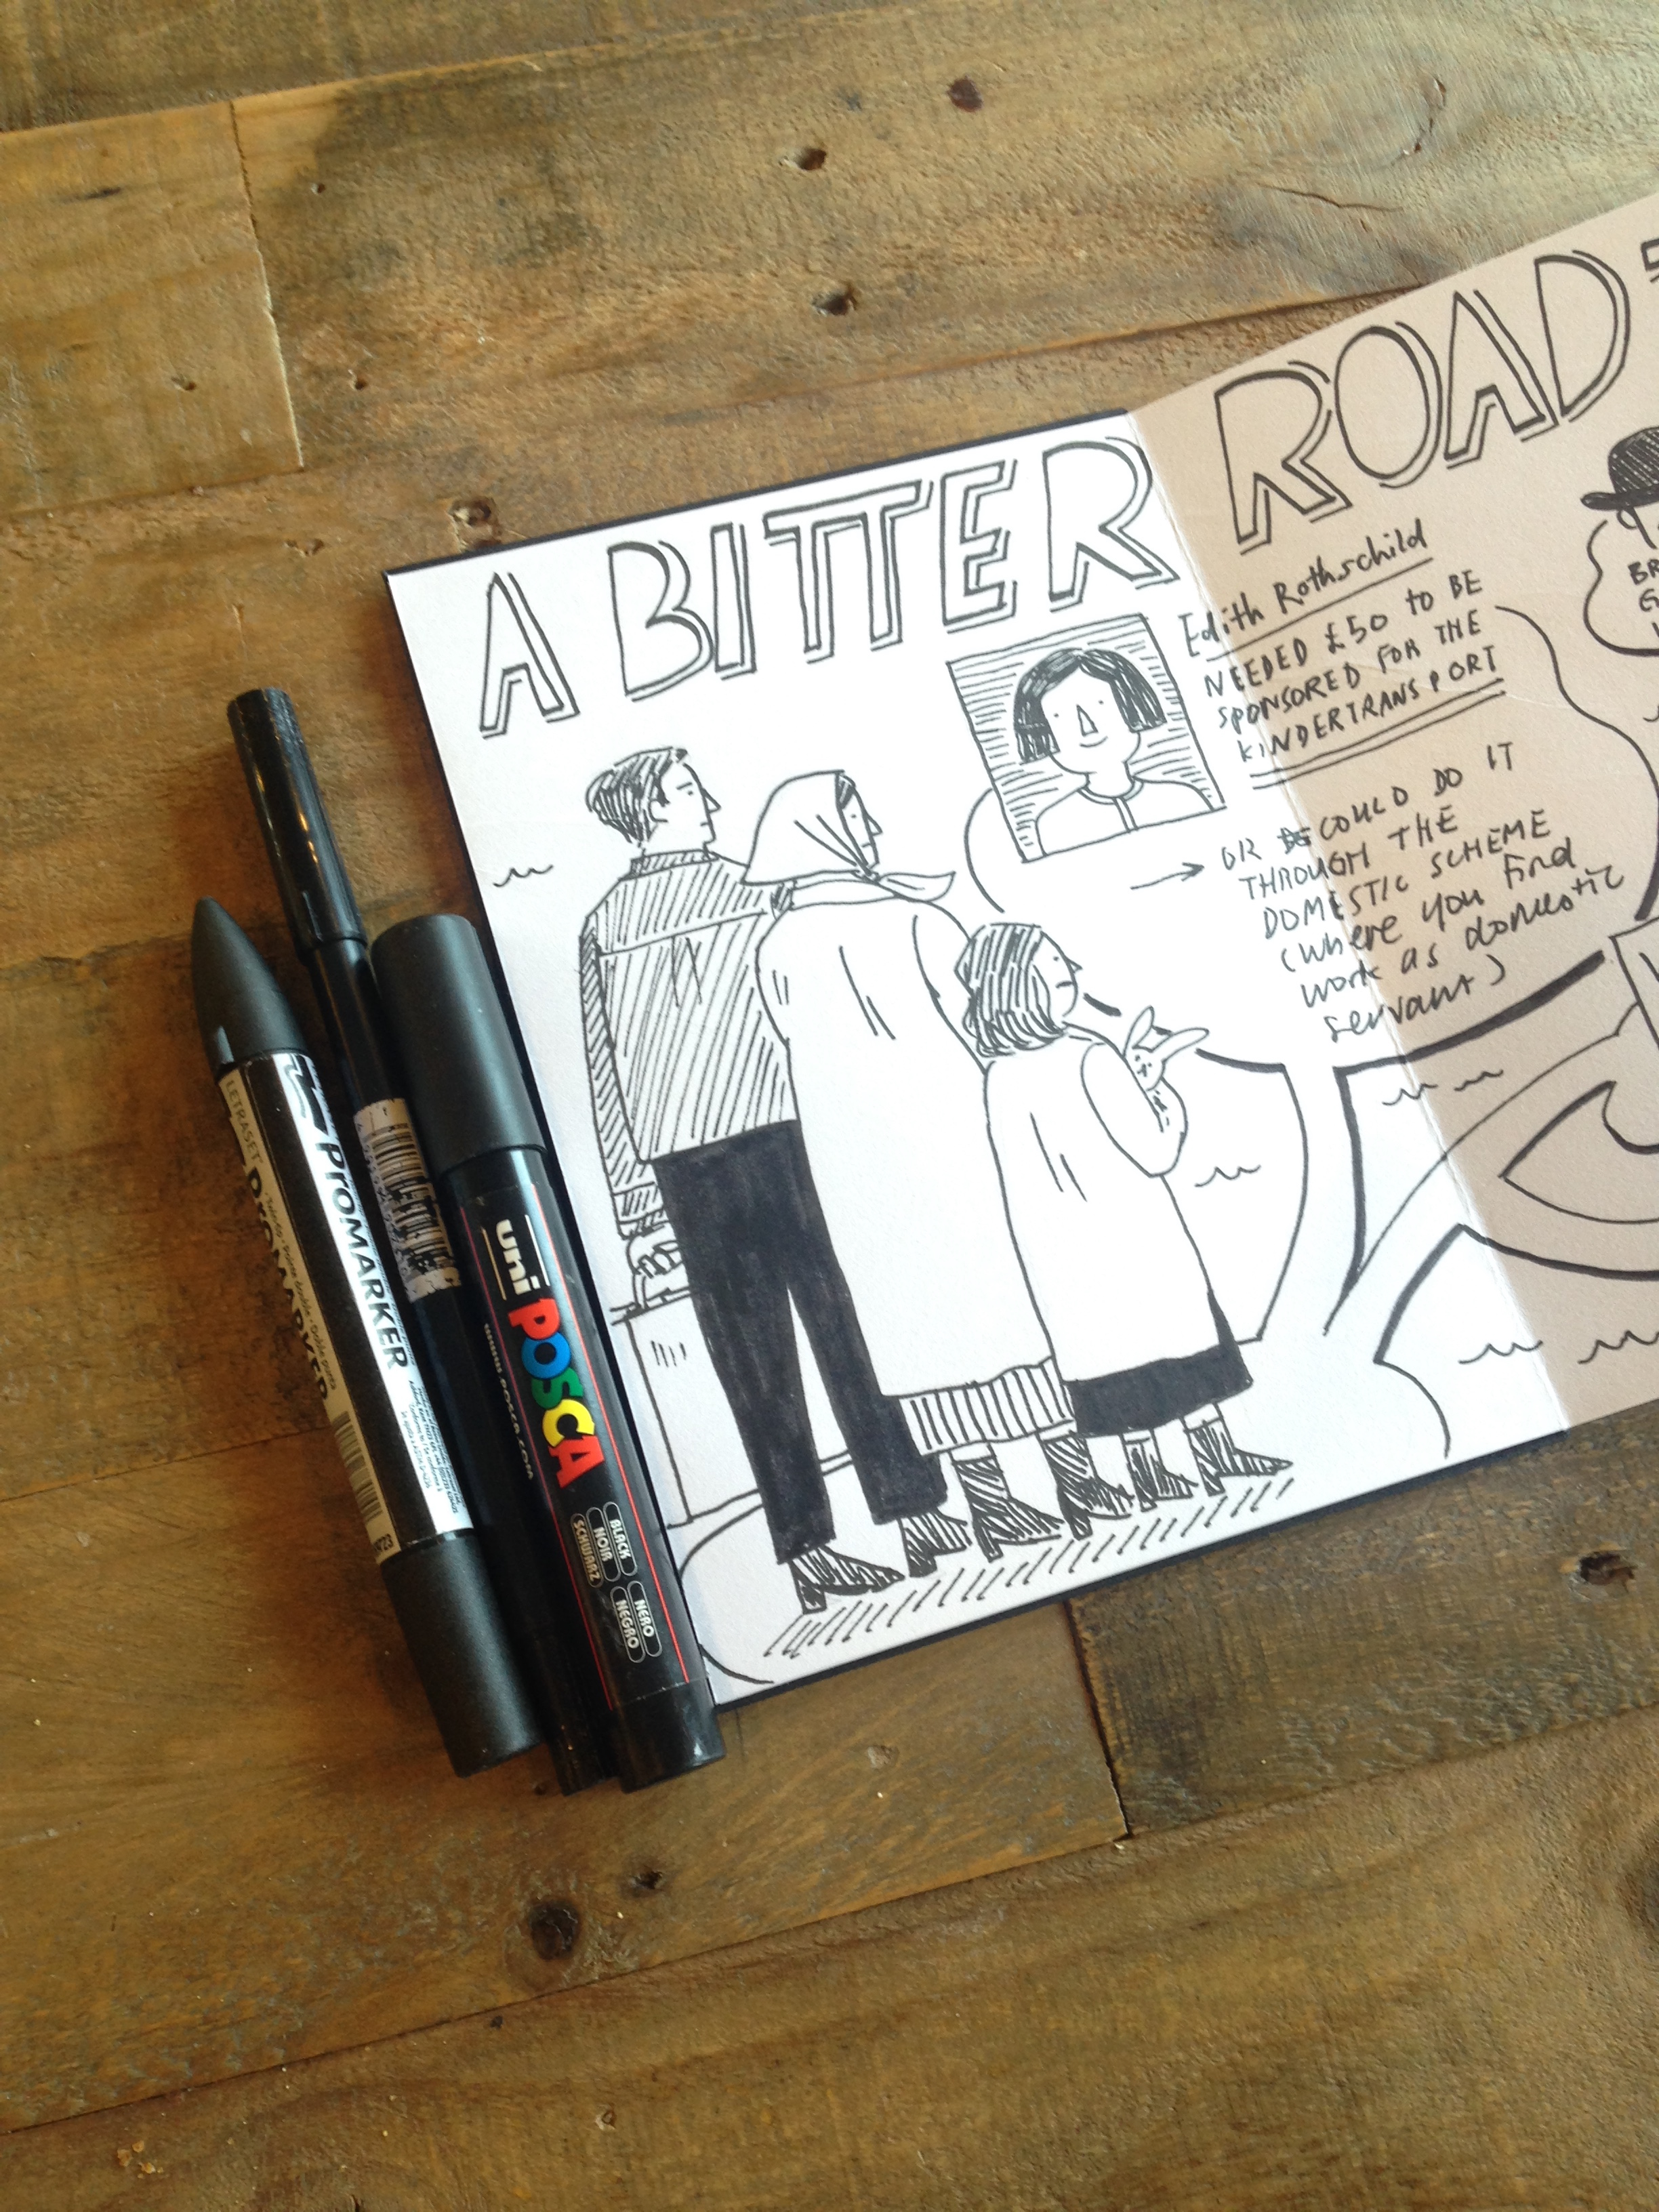 Scriberia sketchnotes of A Bitter Road at The Weiner Library 2